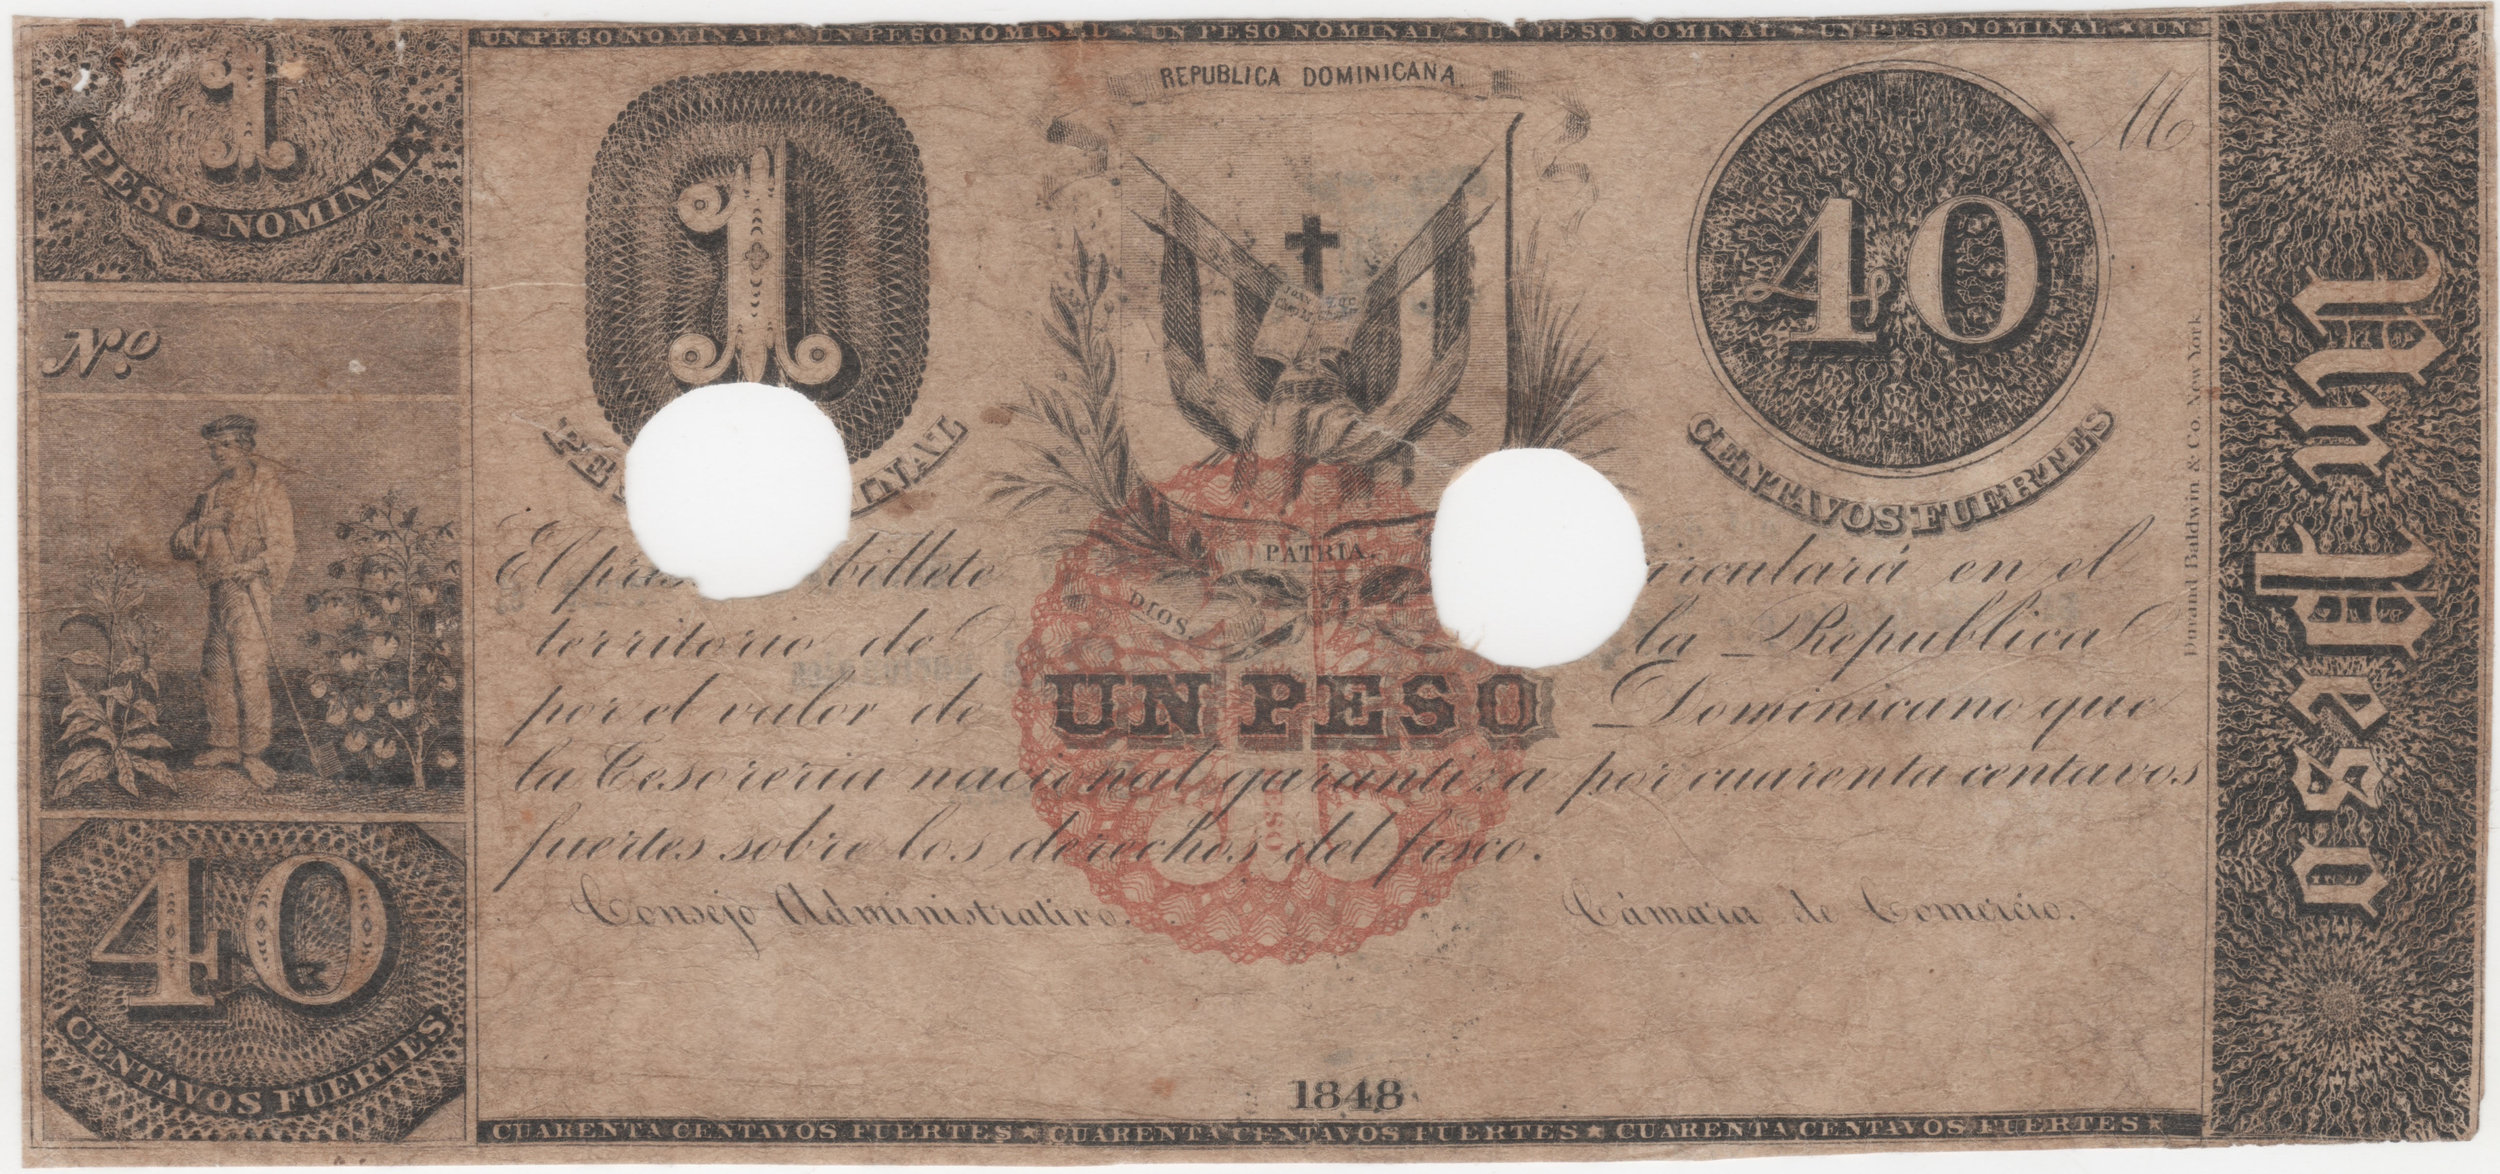 Billetes Primera Republica 3.jpg